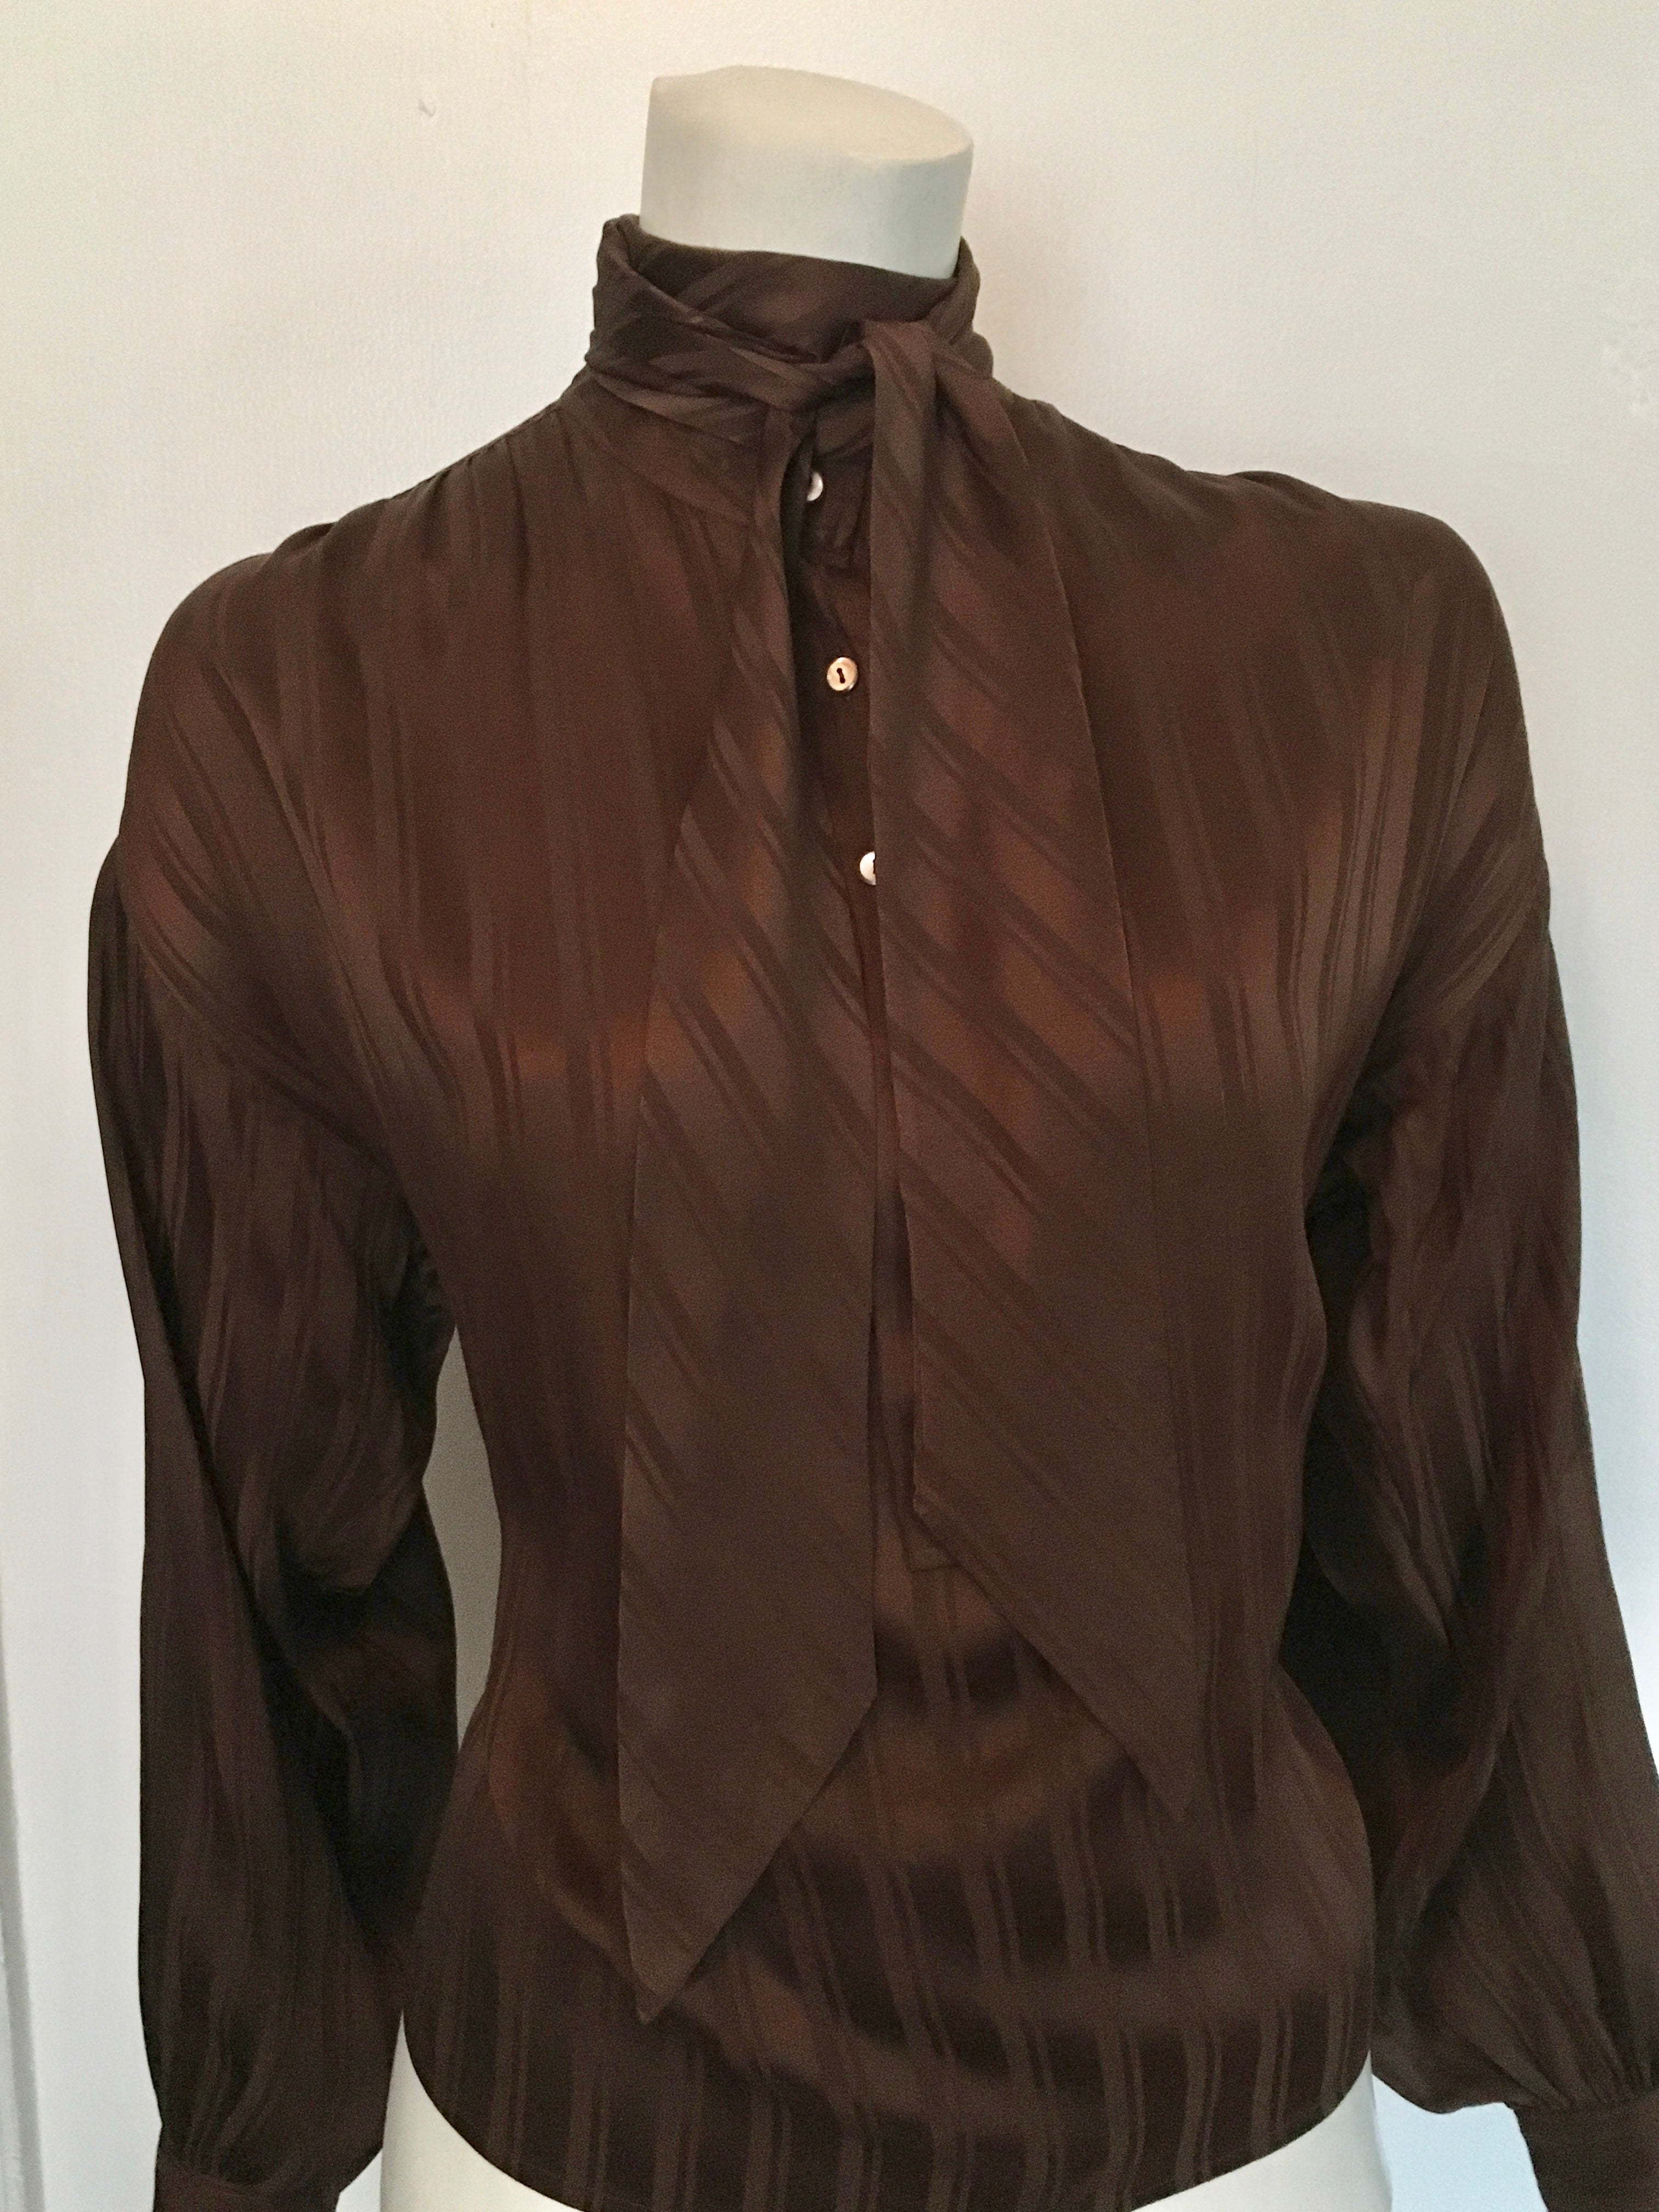 2c12c5af88a53d Yves Saint Laurent Rive Gauche 1970s Brown Silk Blouse with Tie Size Large.  For Sale at 1stdibs